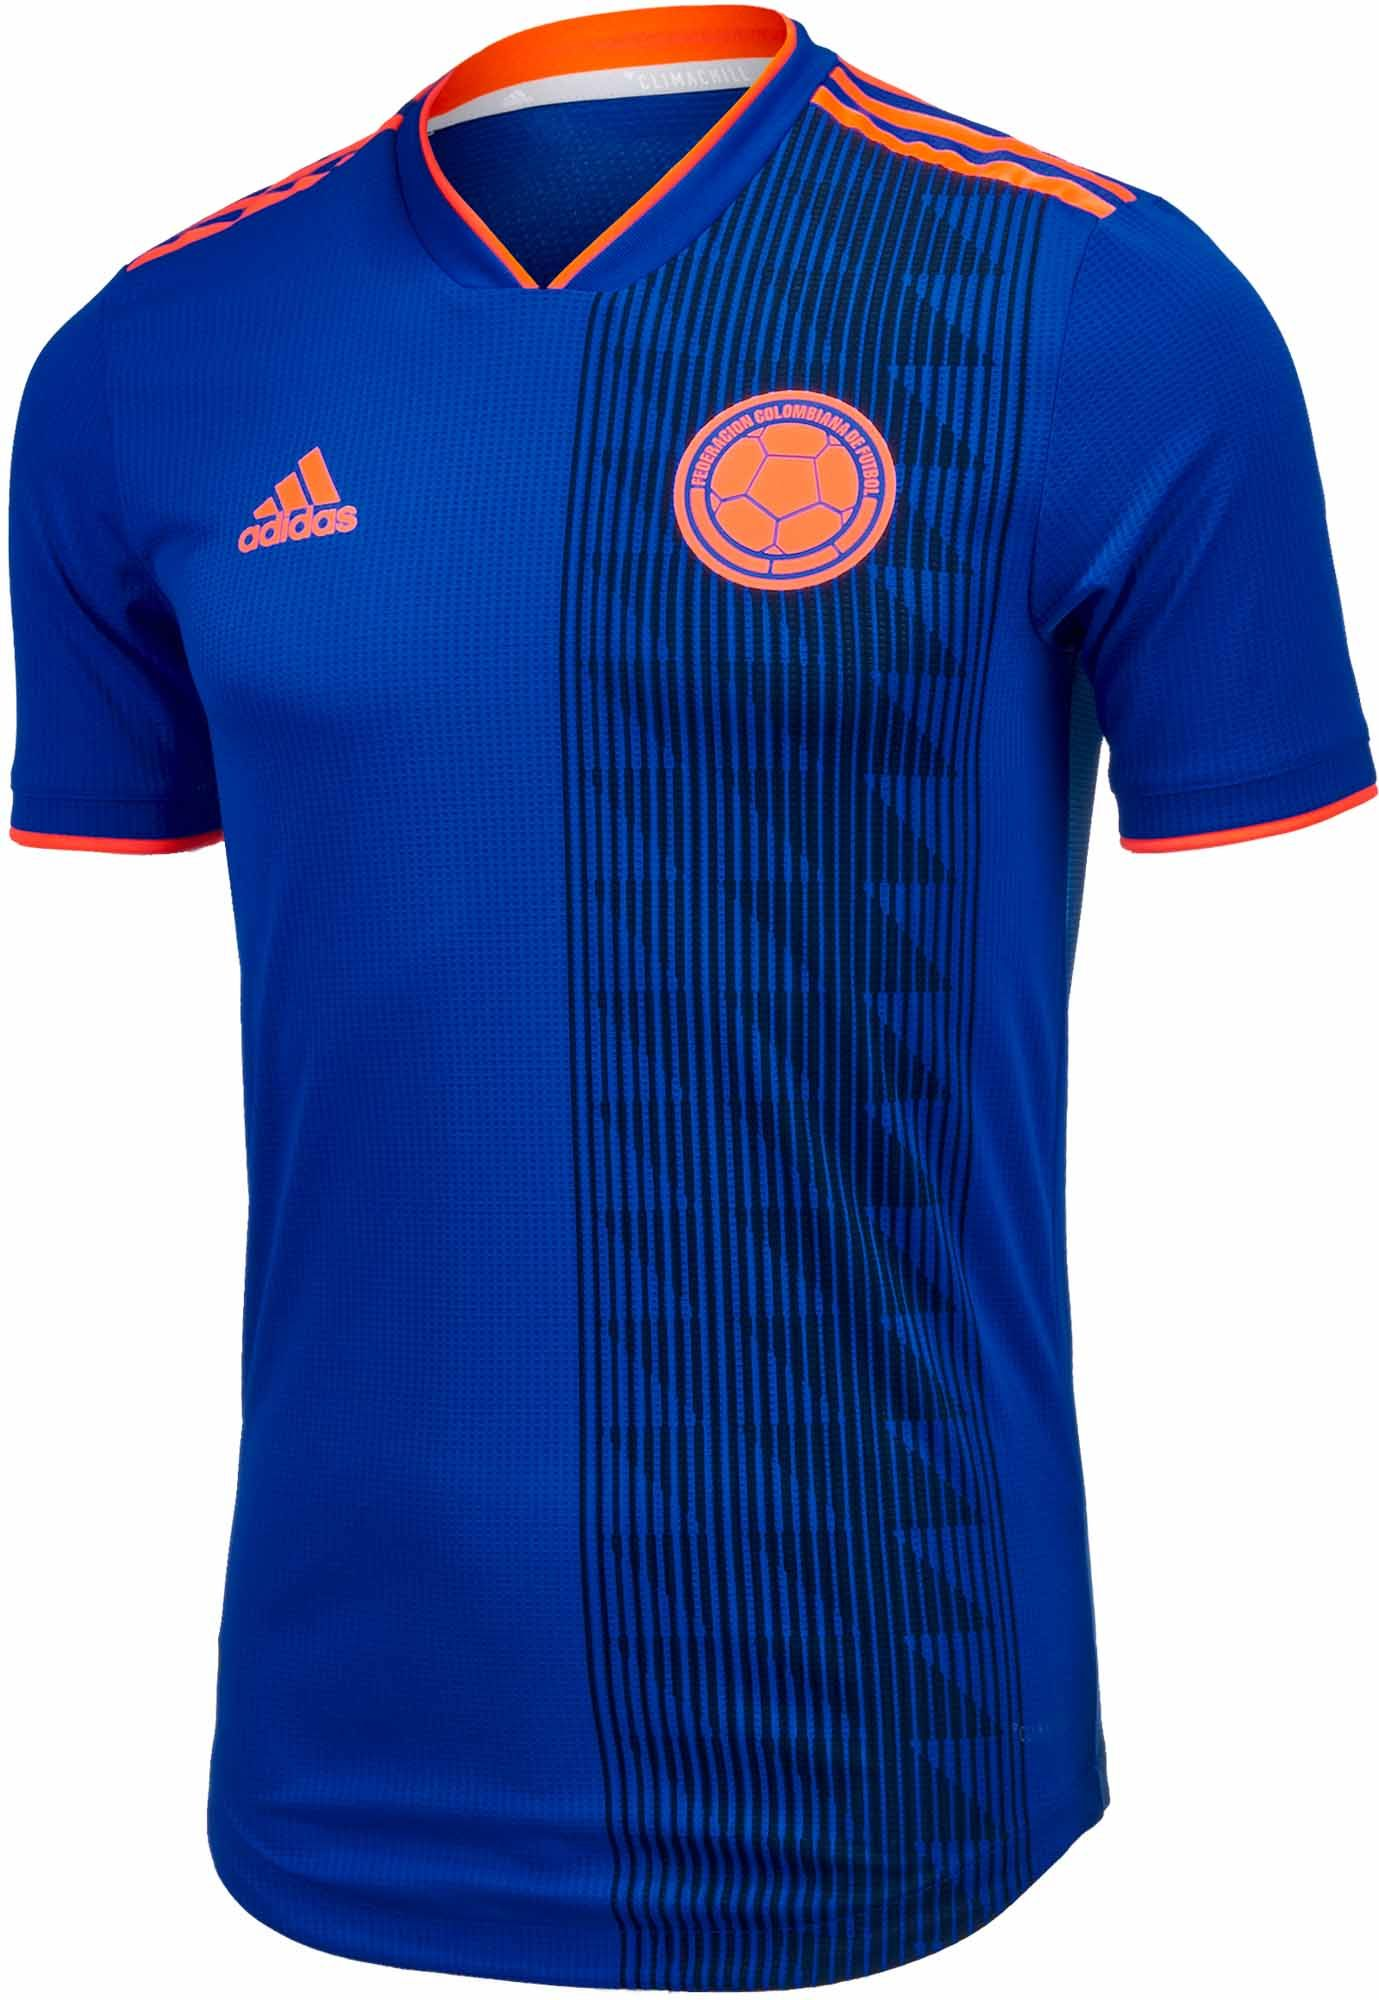 4c9839aca93 2018 19 adidas Colombia authentic Away Jersey. Buy it from SoccerPro.